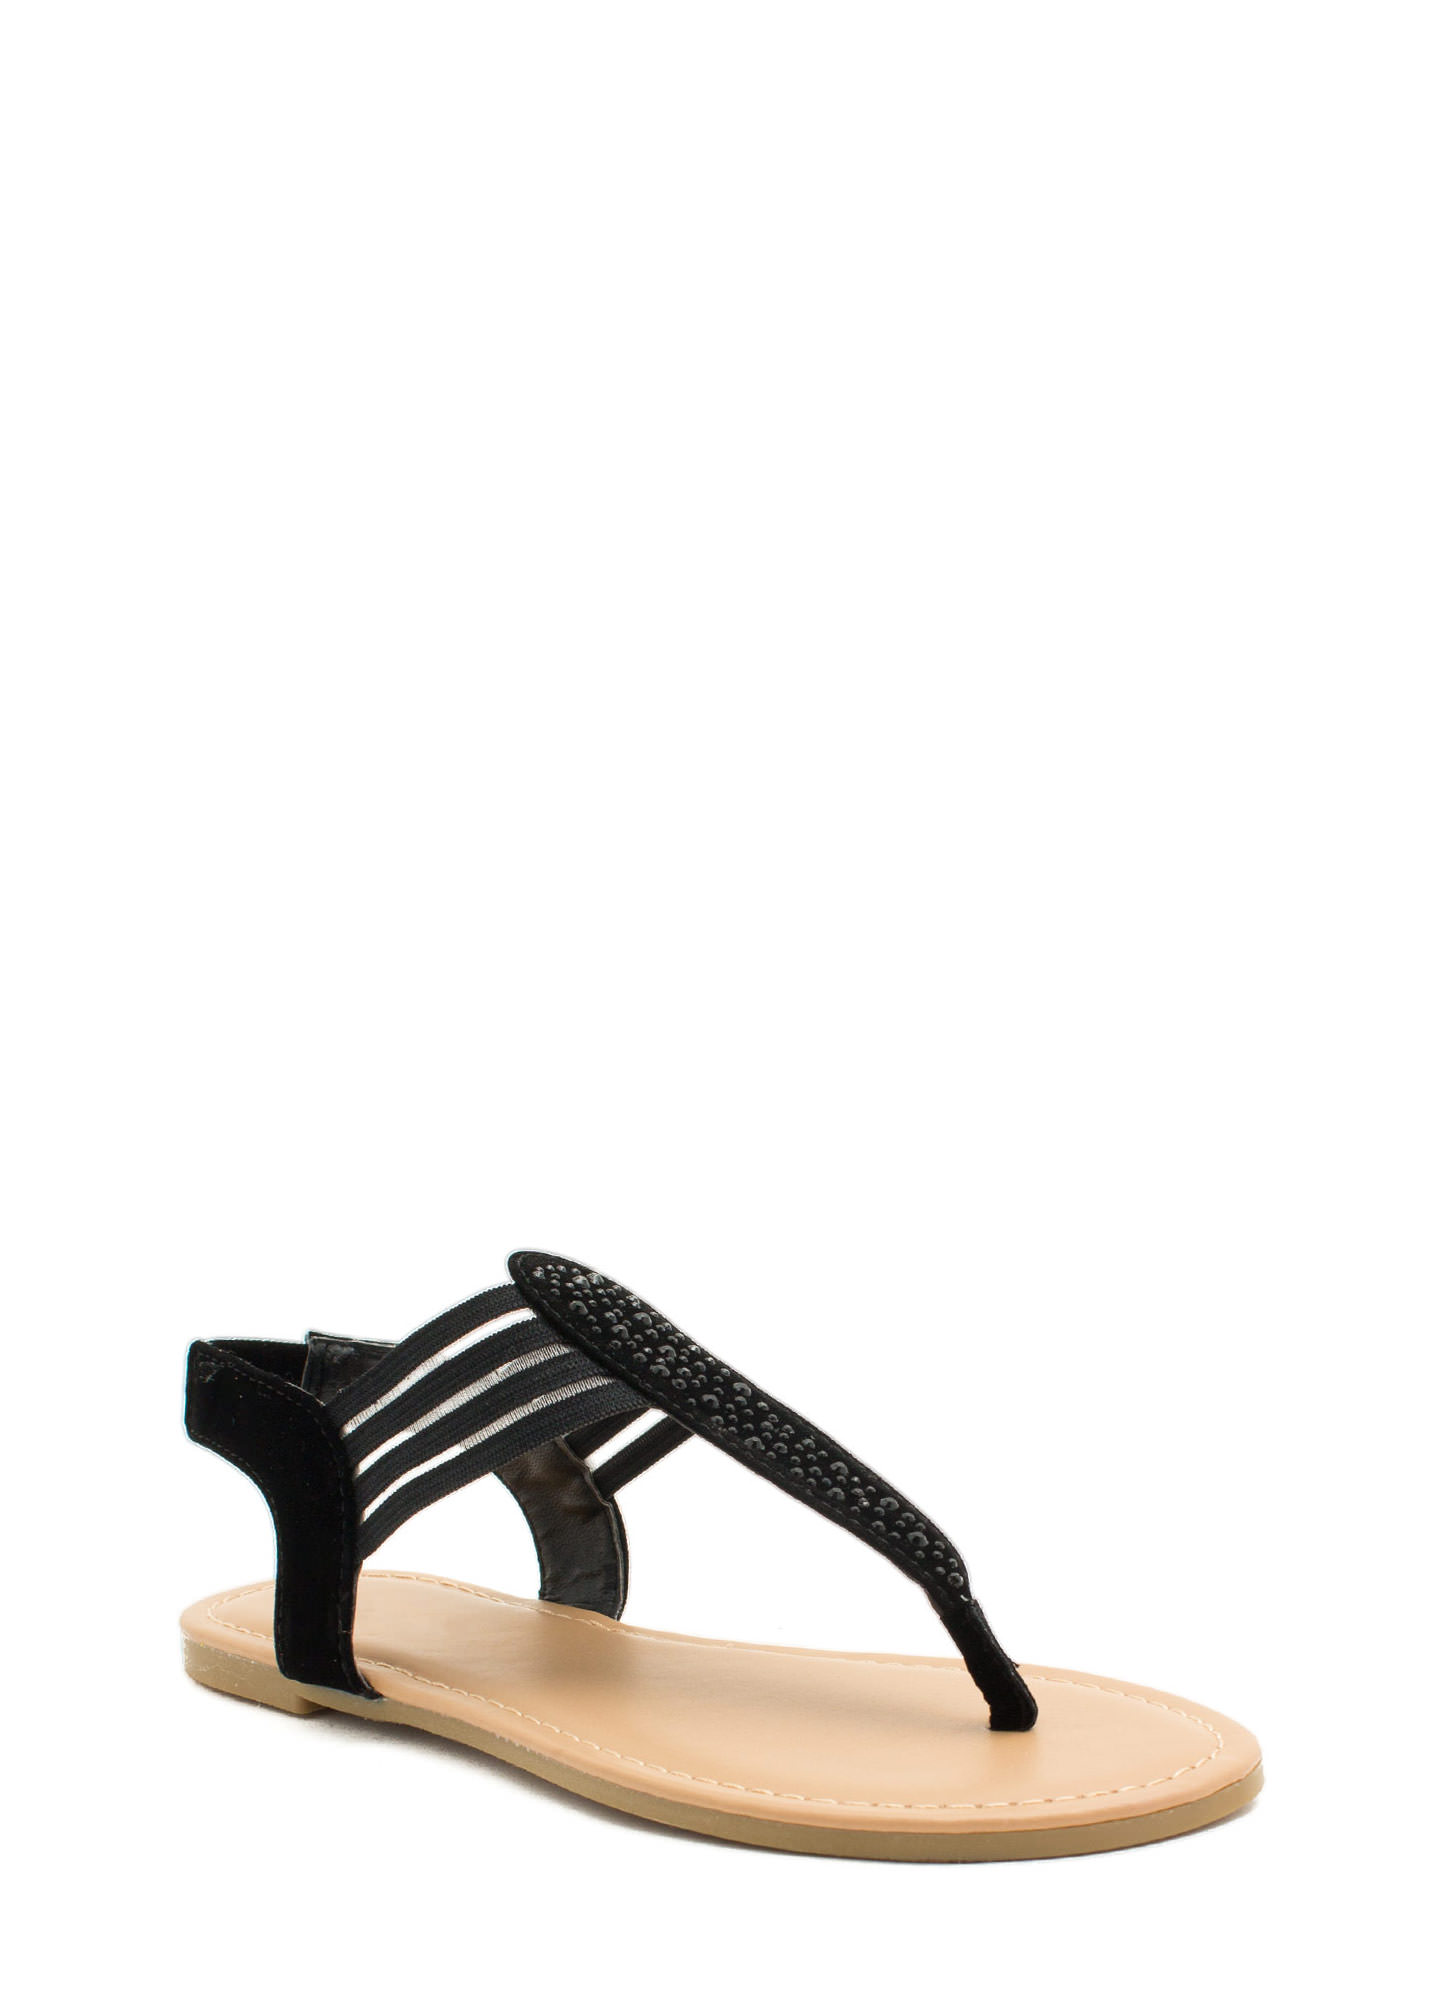 Mesh 'N Shine Thong Sandals BLACK